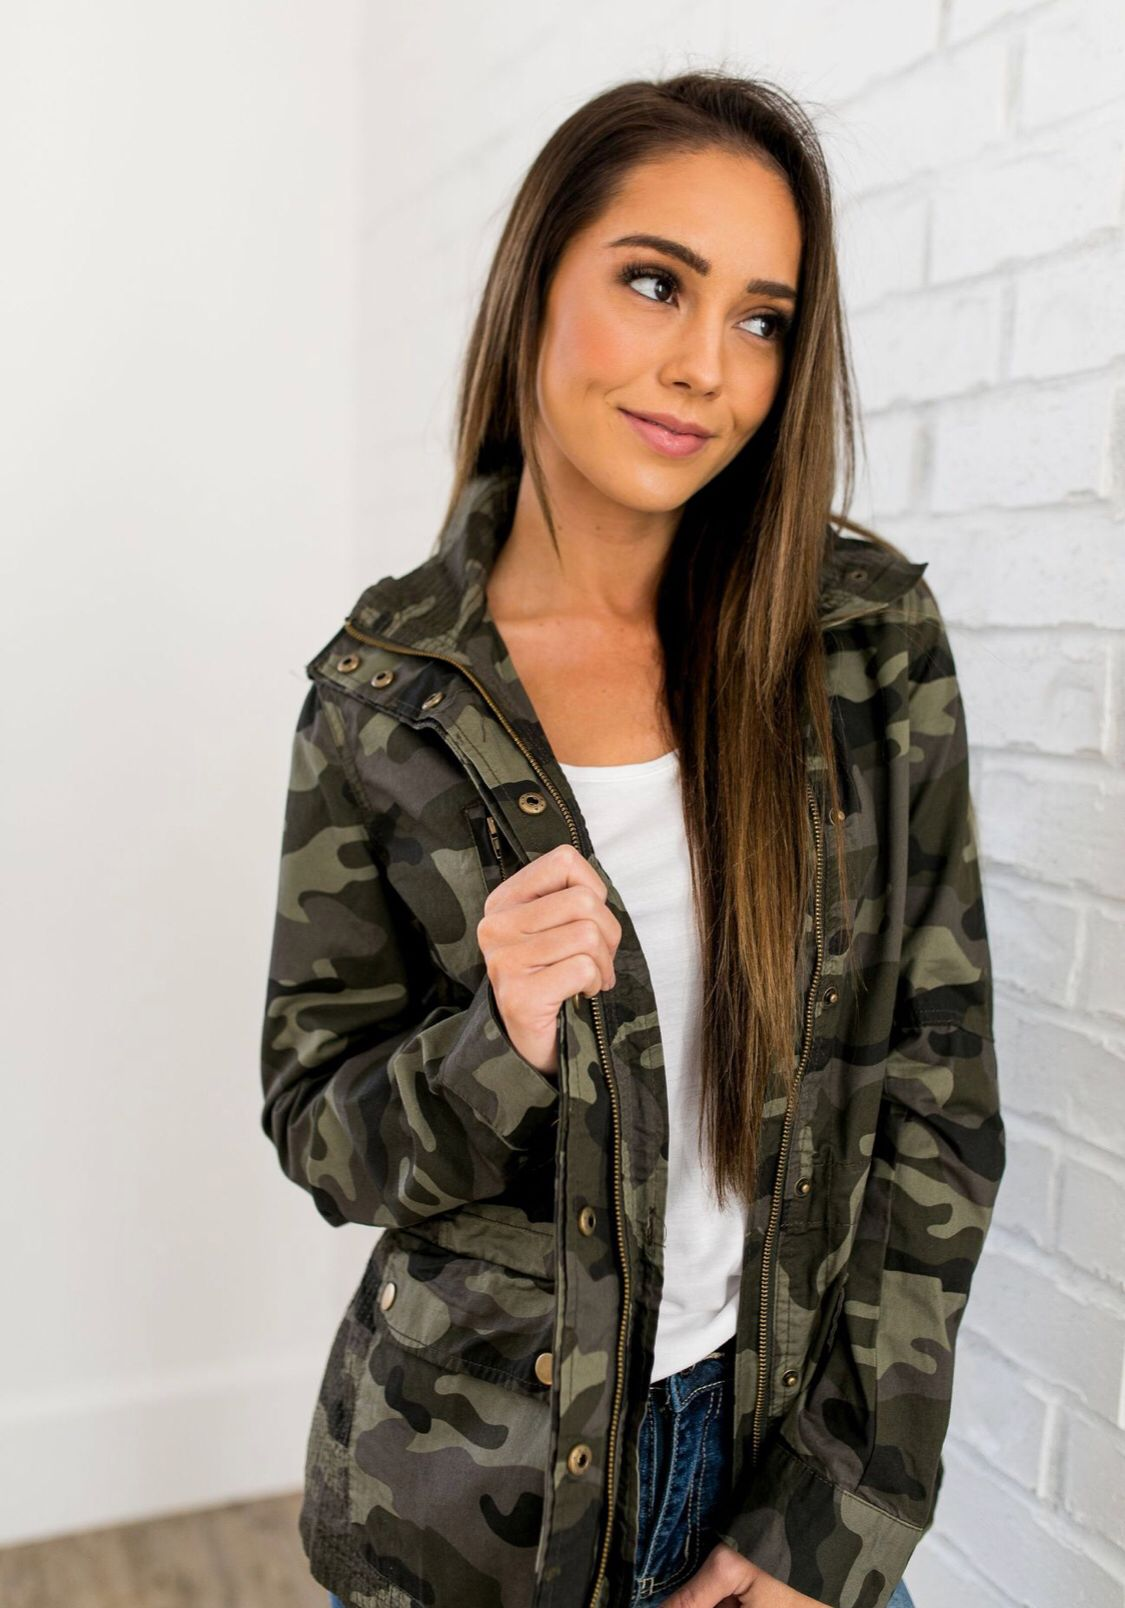 You Can Do Anything Camouflage Jacket Camouflage Jacket Camo Jacket Women Camoflauge Jacket [ 1608 x 1125 Pixel ]